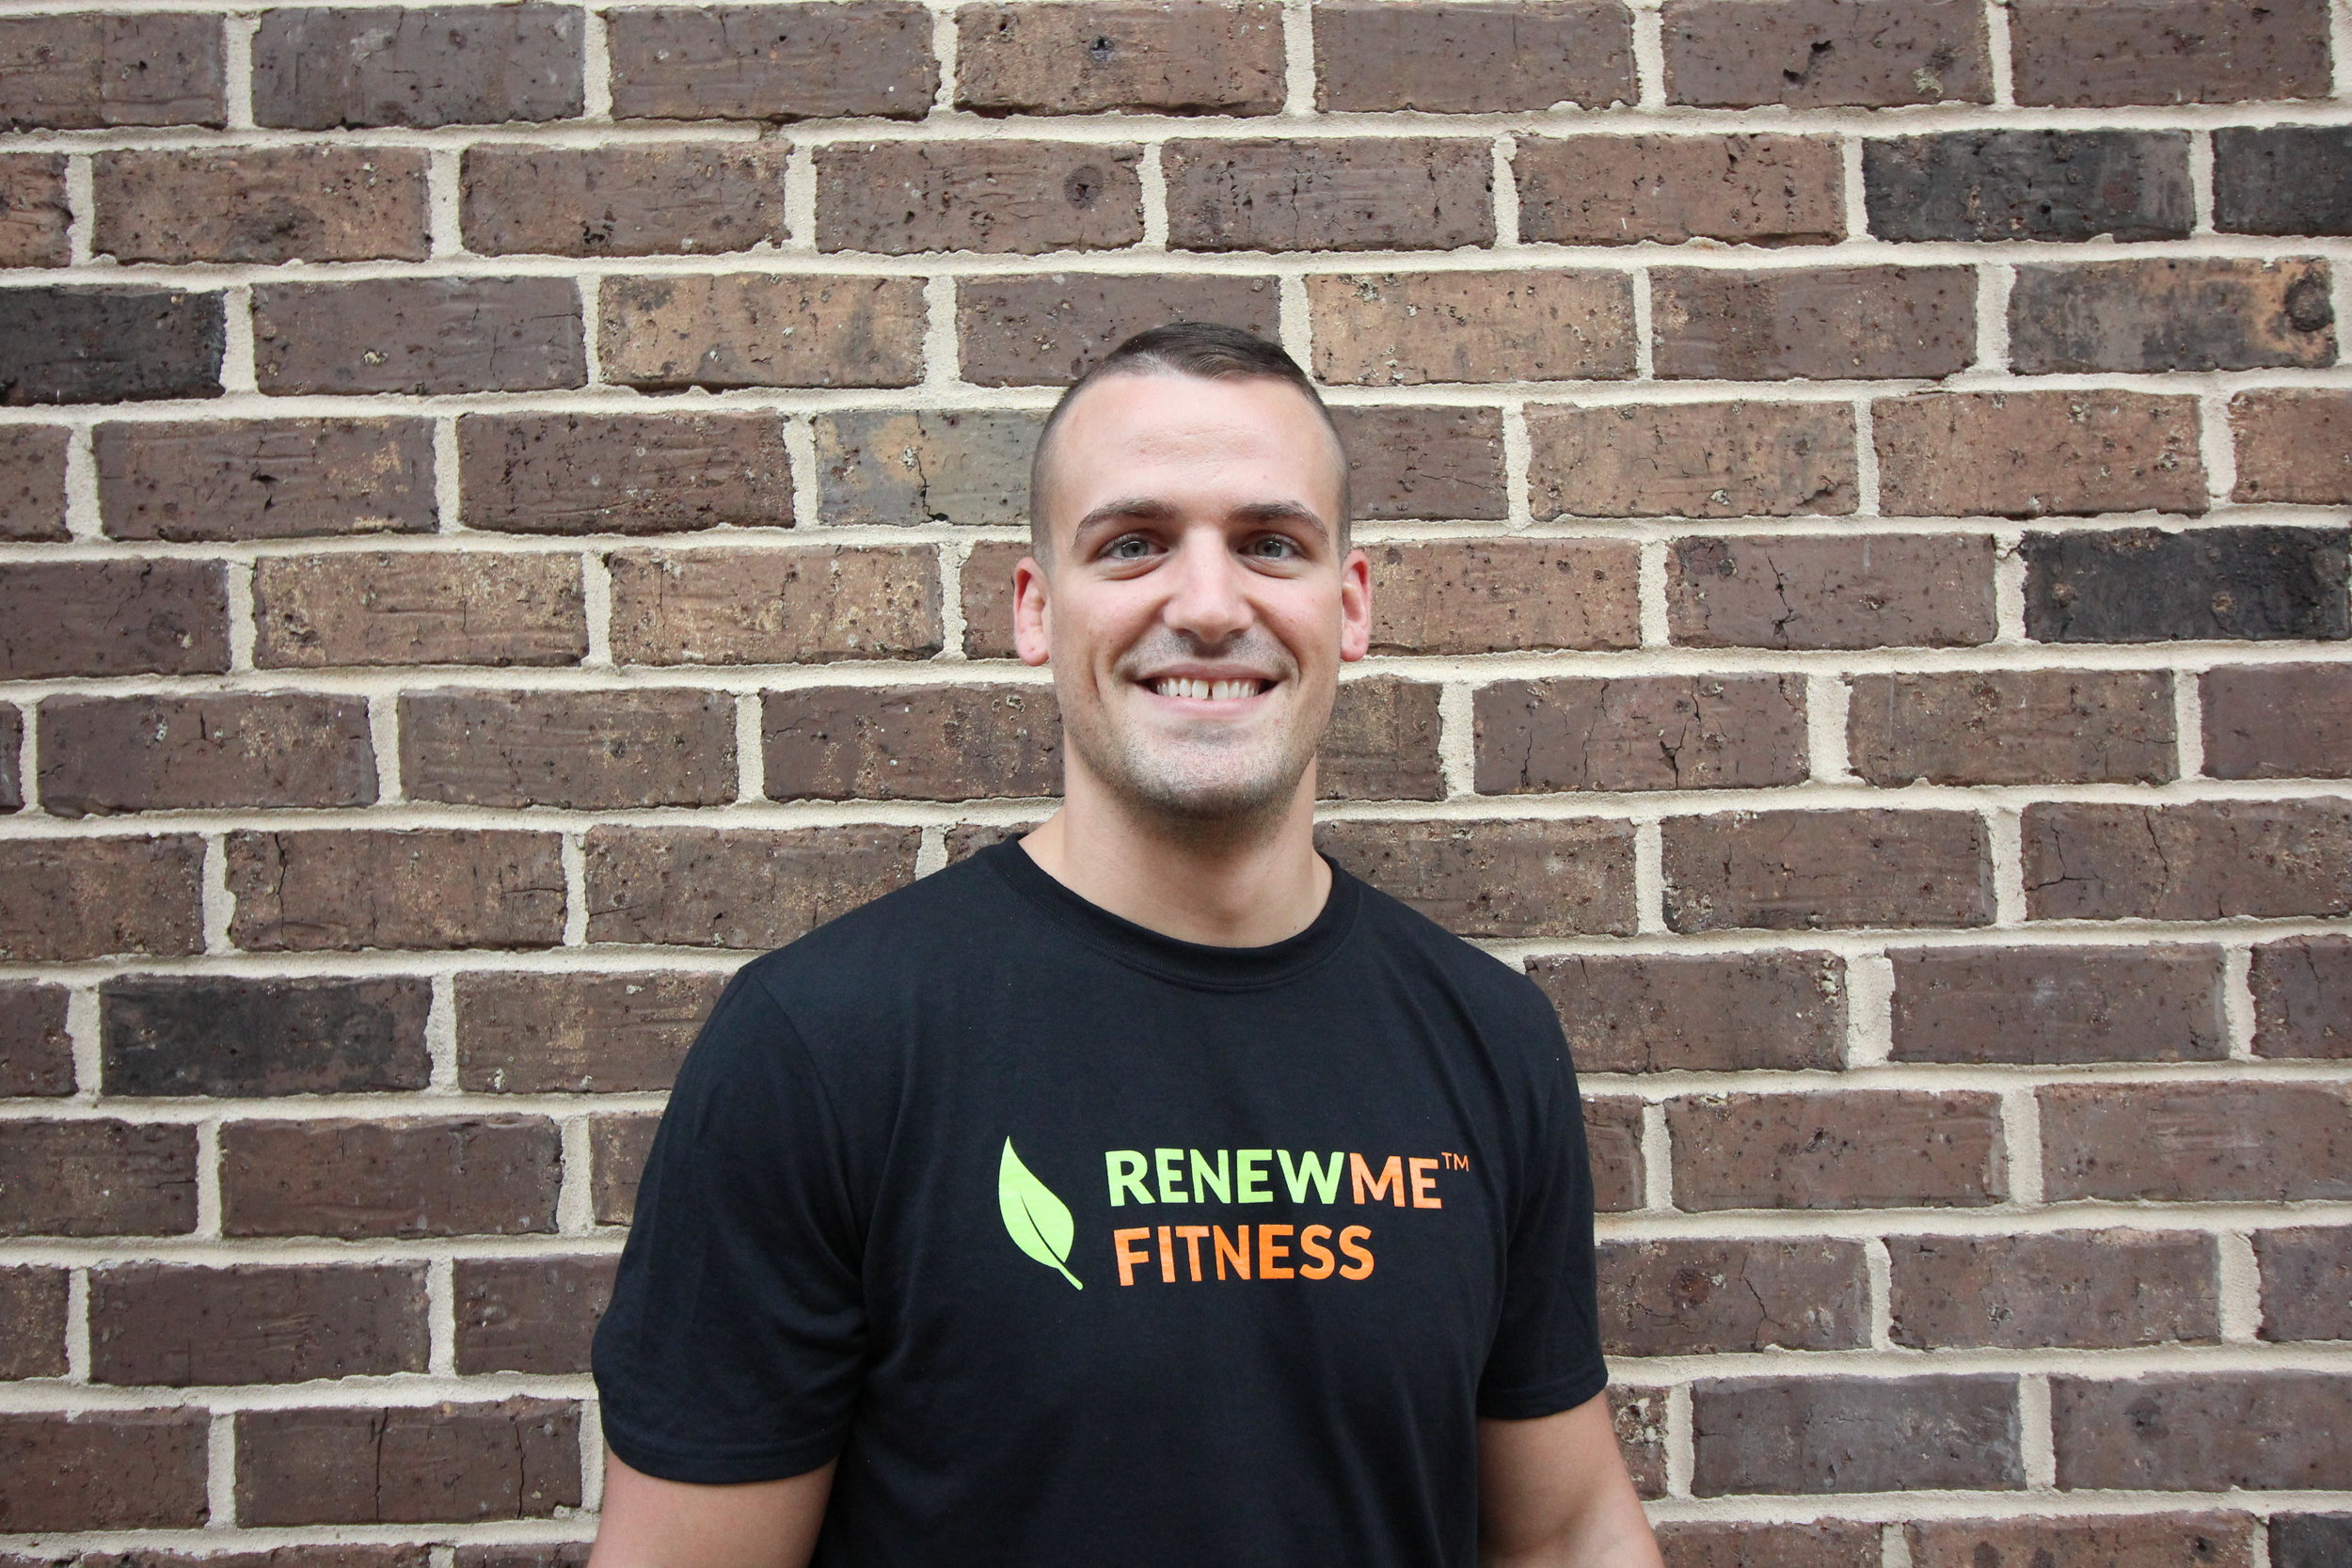 Copy of Dr. Dan Reed, RenewMe Fitness personal trainer